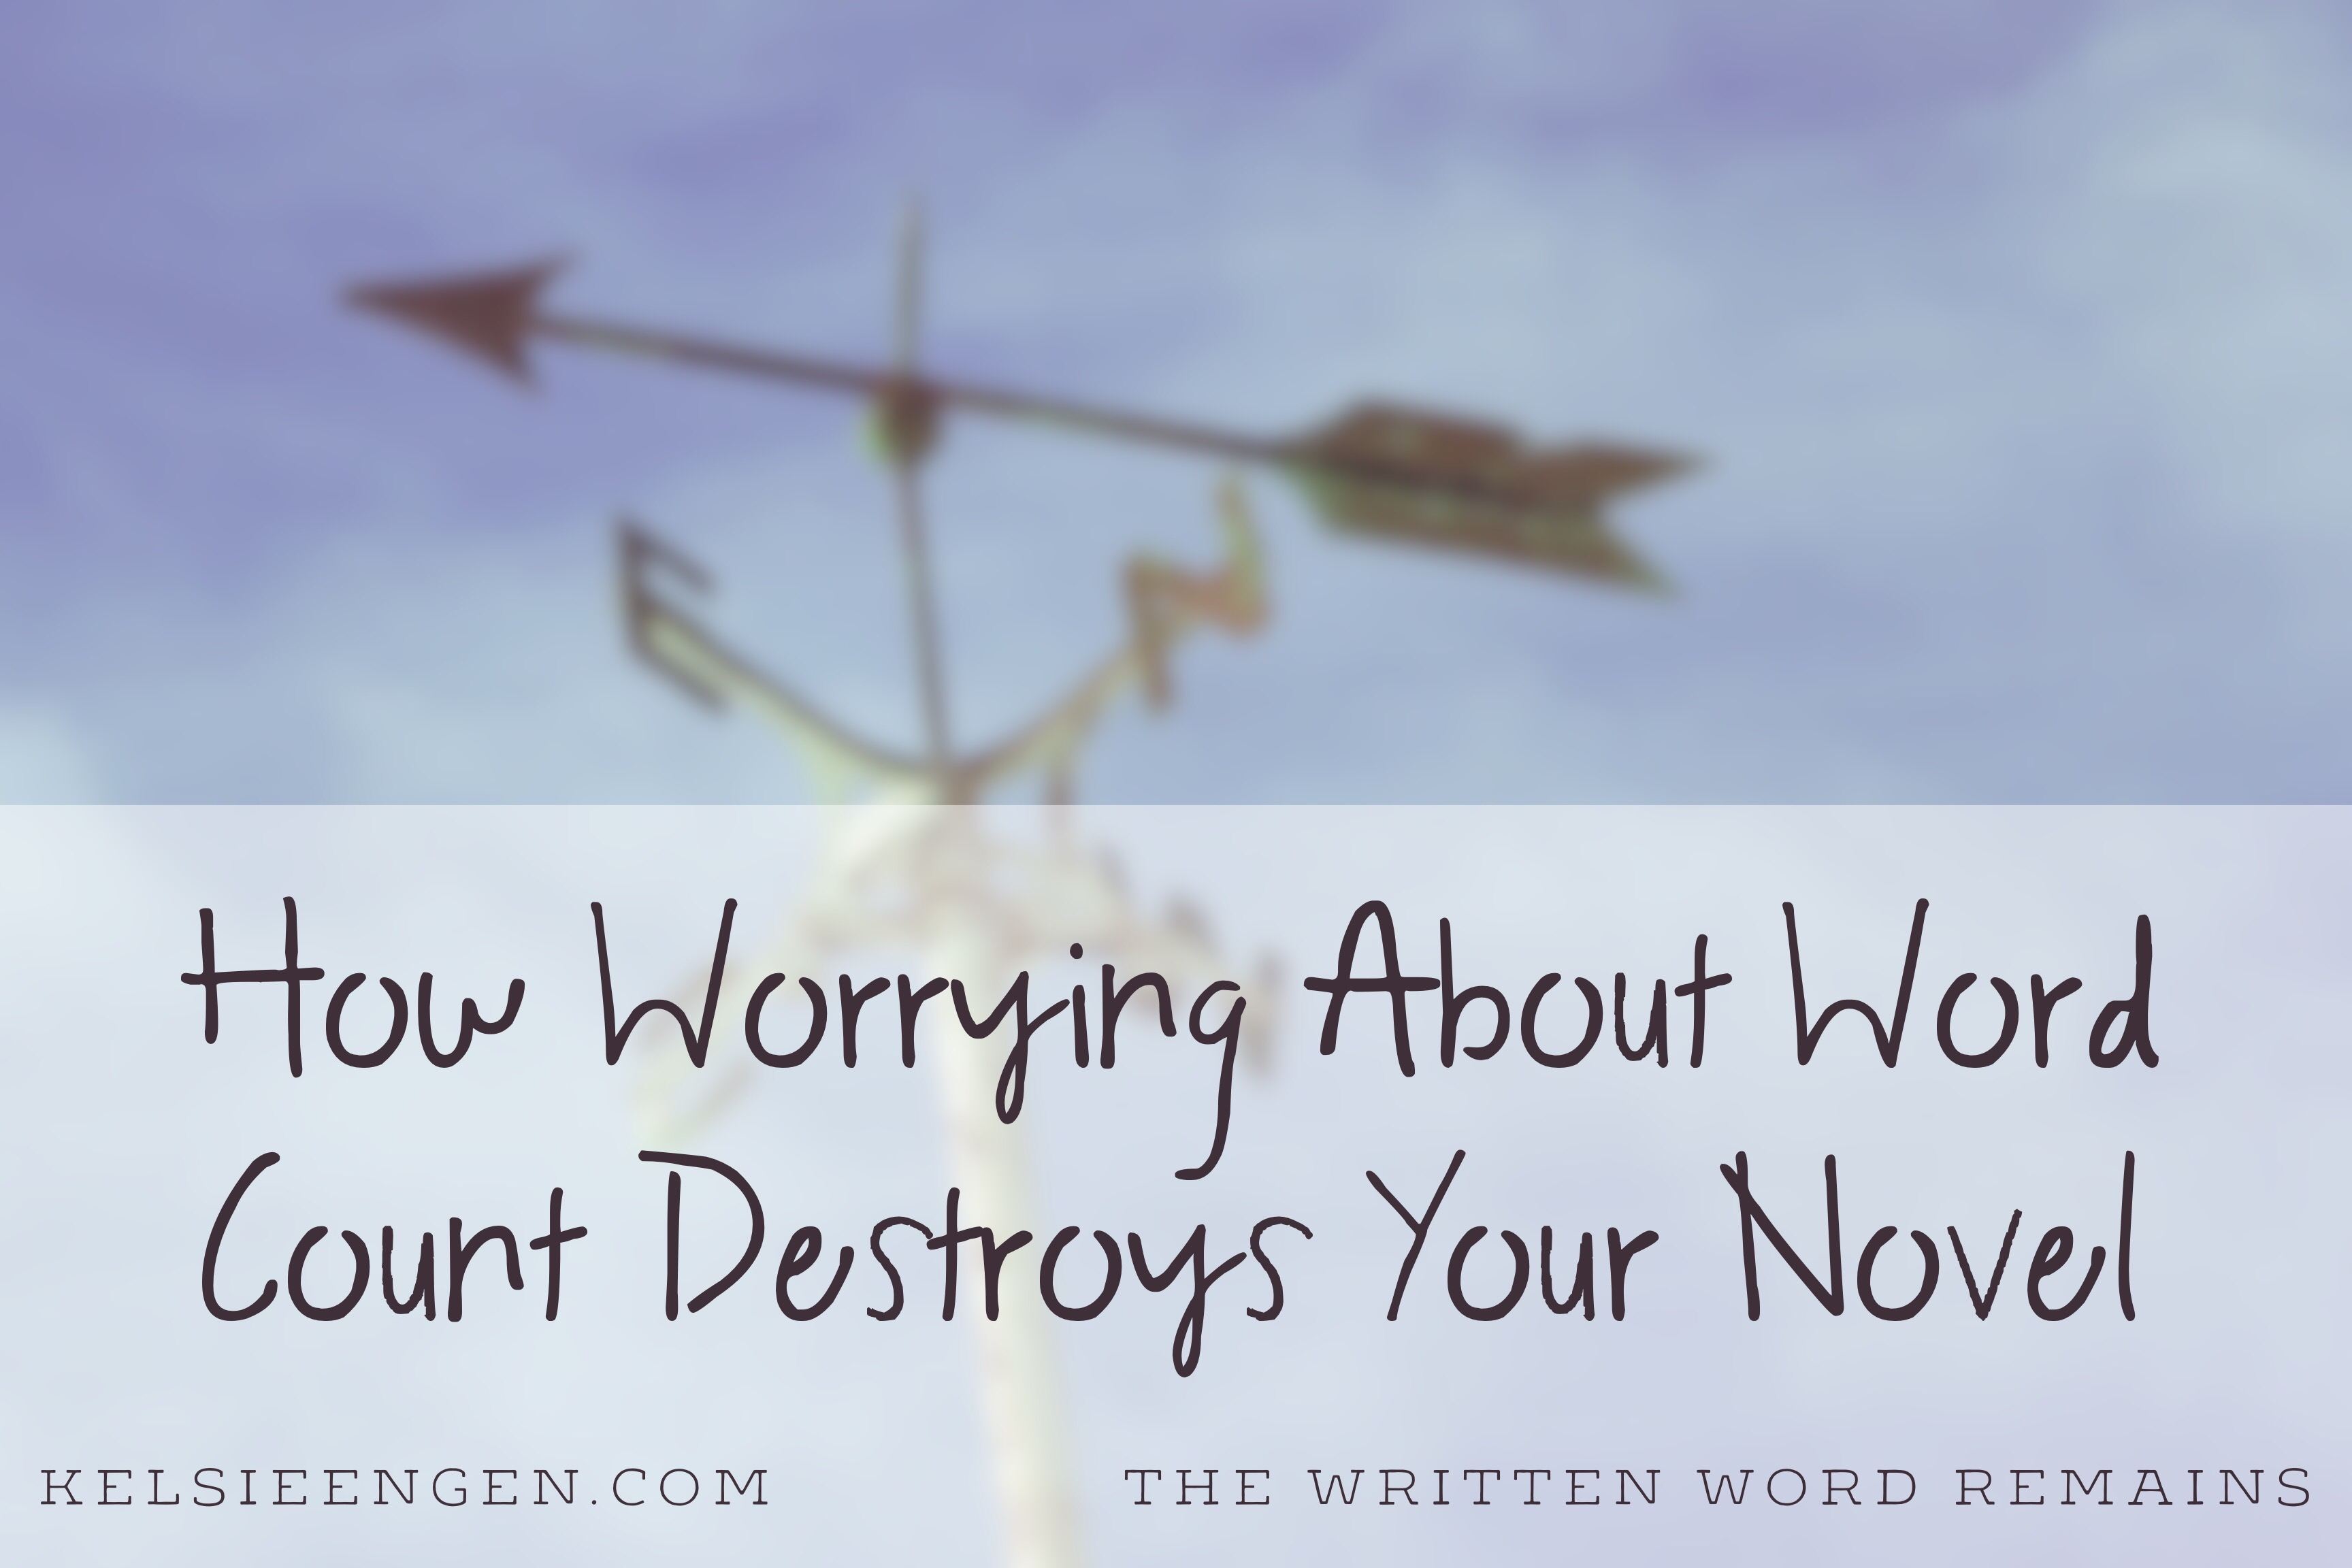 How Worrying About Word Count Destroys Your Novel